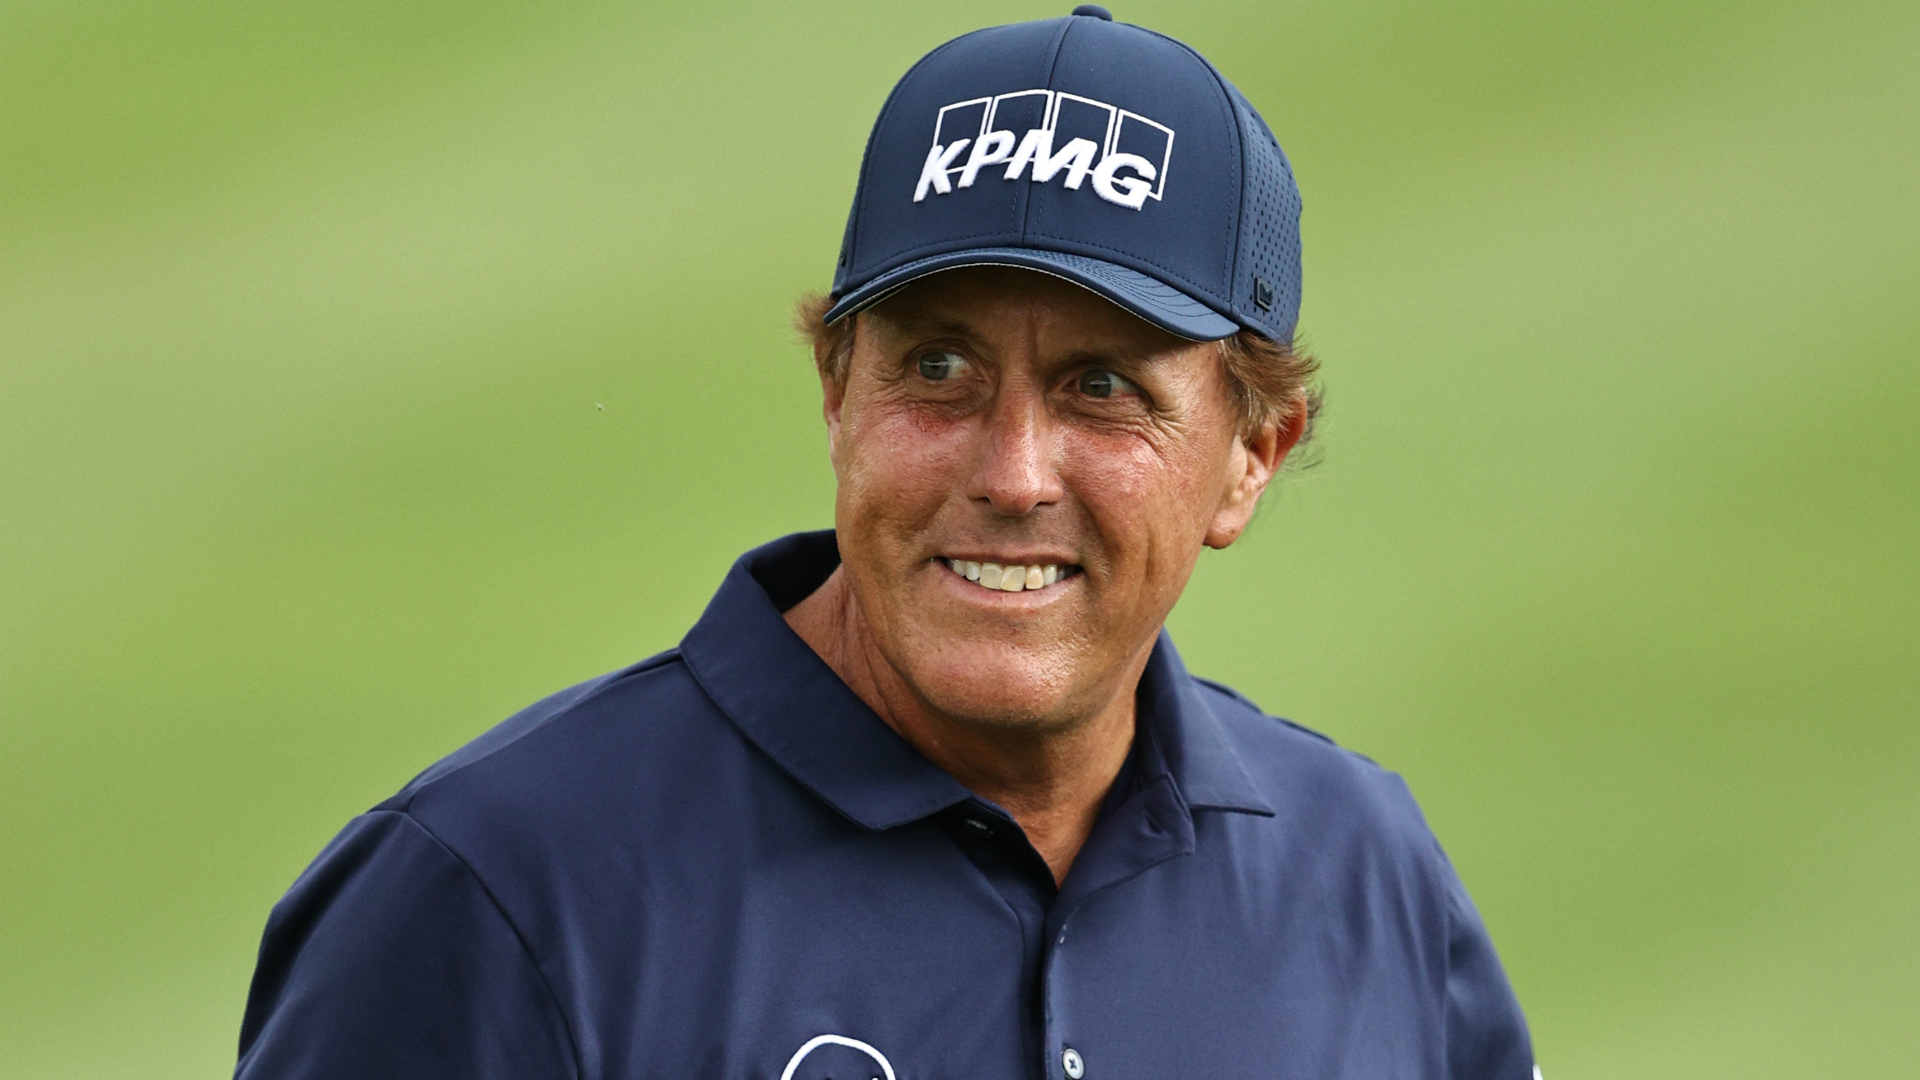 Mickelson surges into Travelers Championship lead, McIlroy four back 1